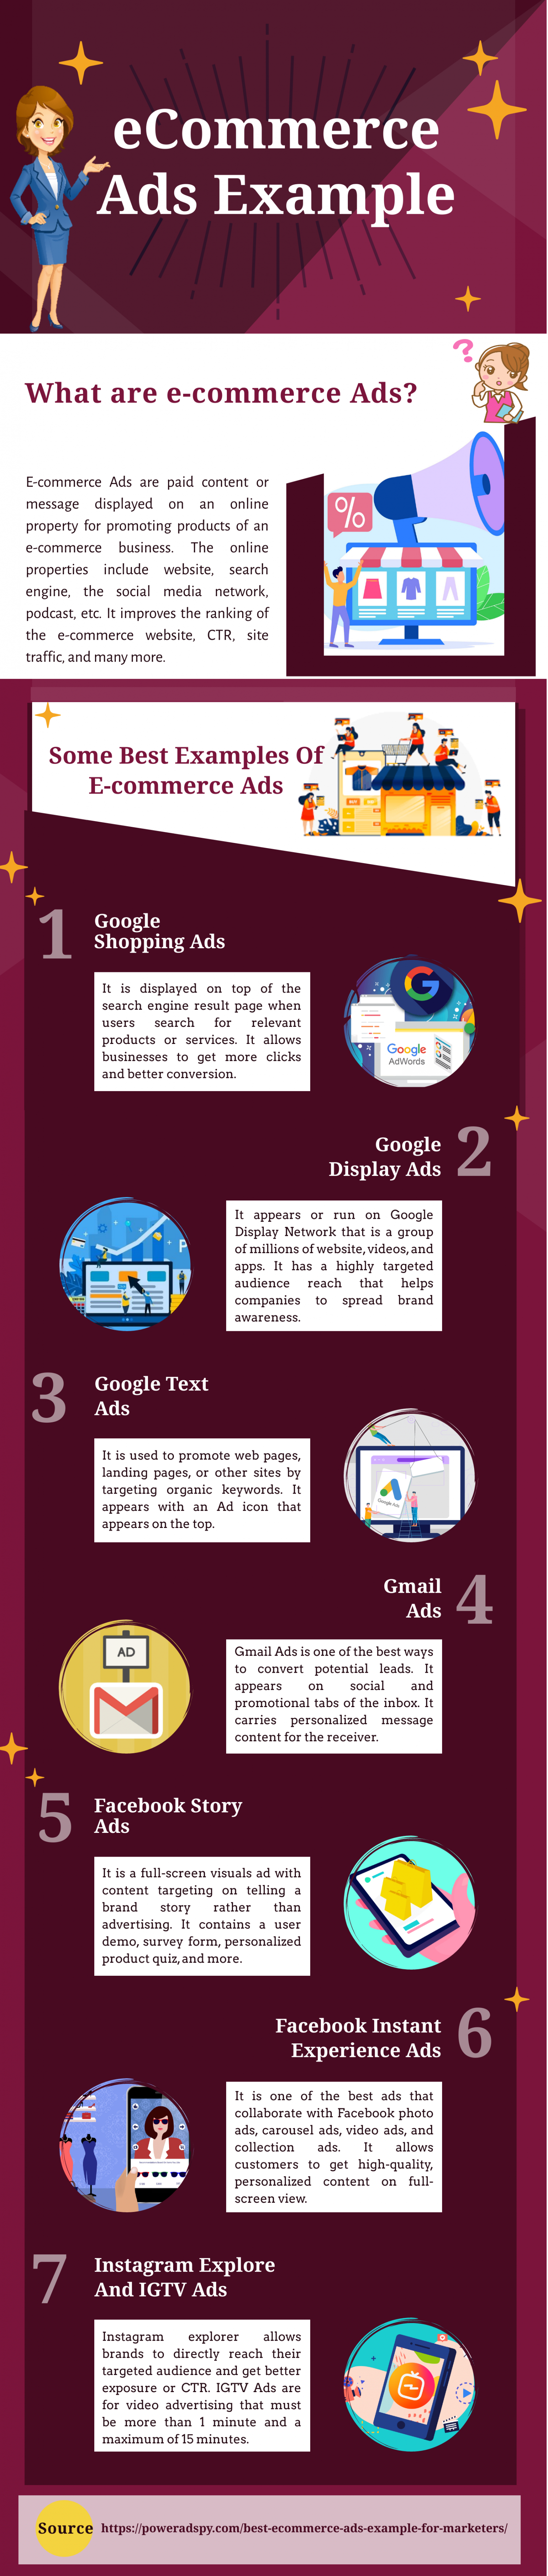 eCommerce Ads Example Infographic